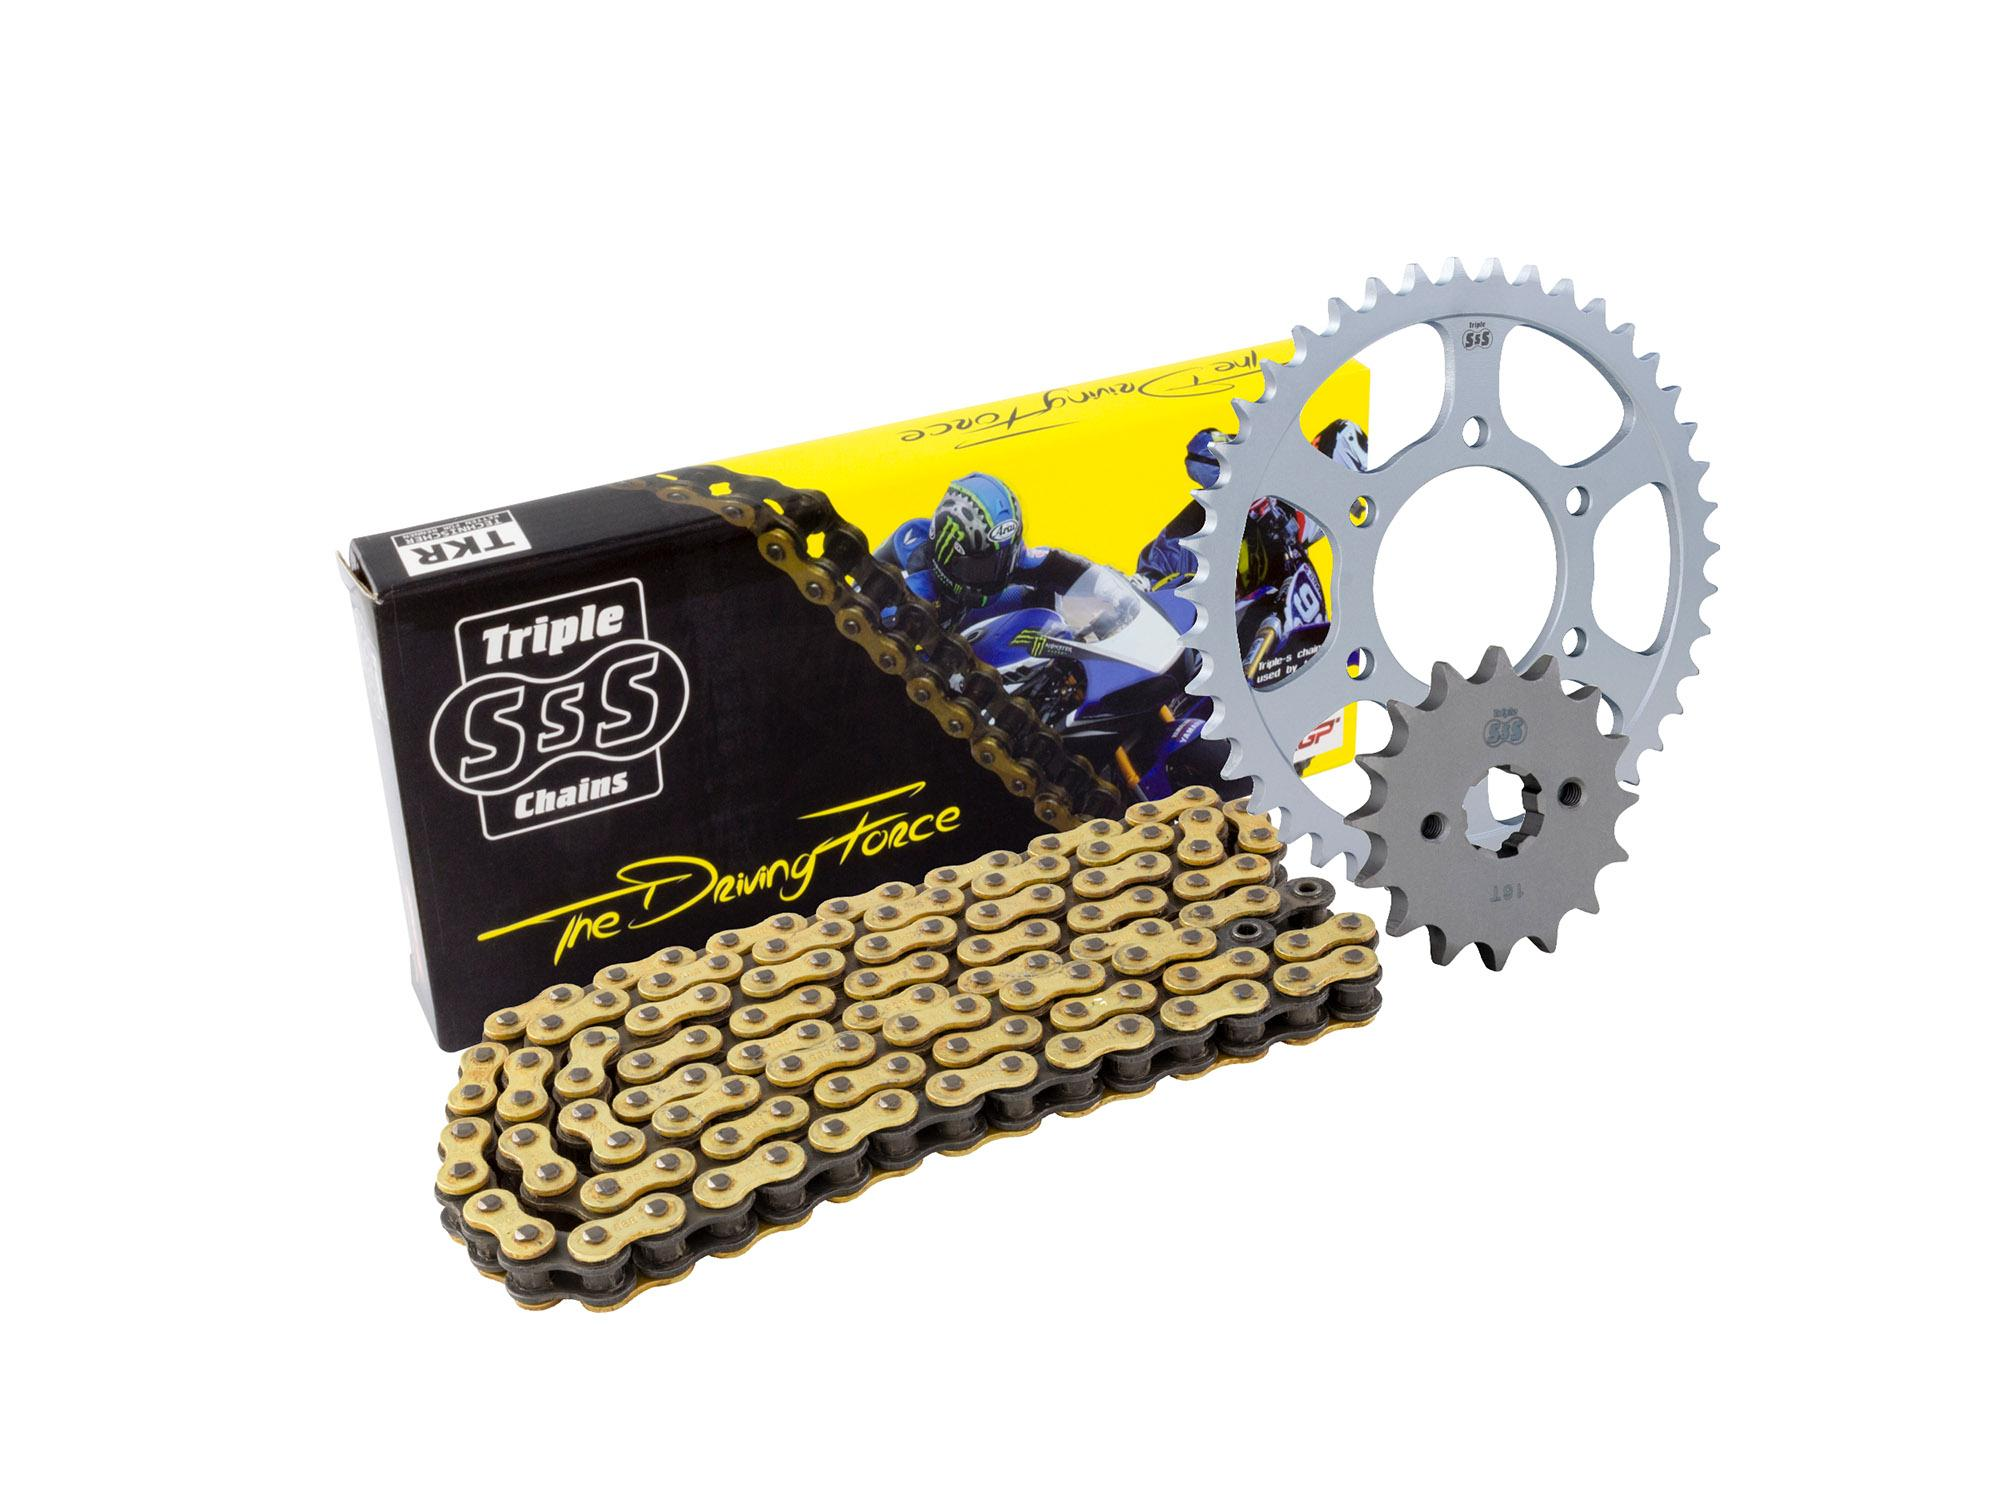 Suzuki GSX-R750 11> Chain & Sprocket Kit: 17T Front, 45T Rear, HD O-Ring Gold Chain 525H 116 Link